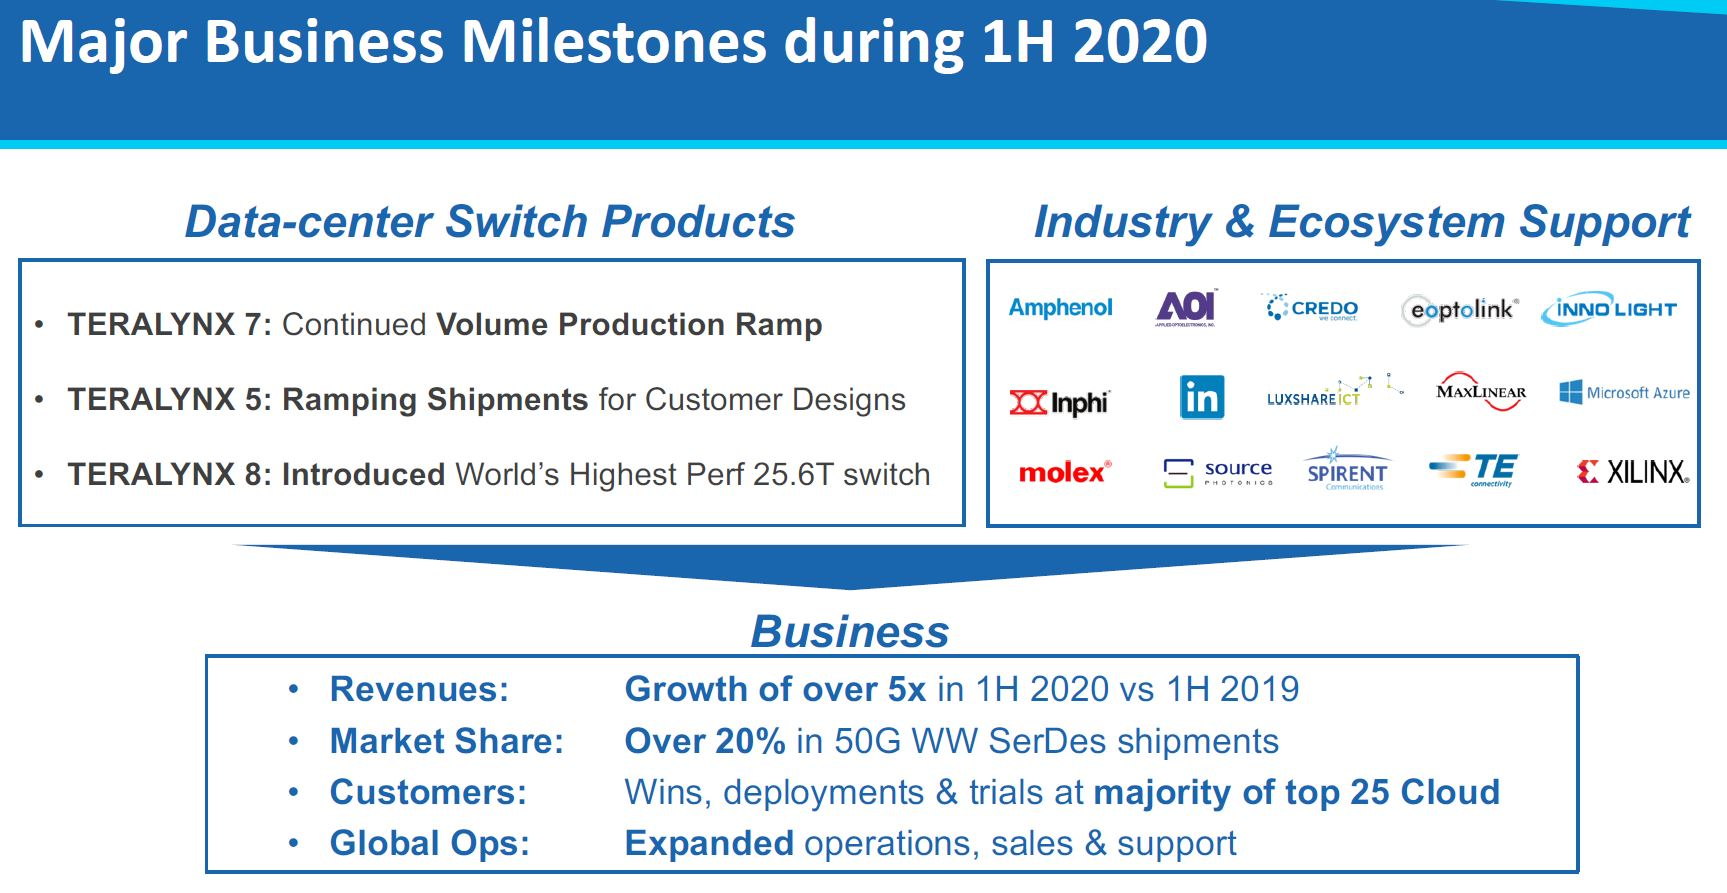 Innovium Business Milestones 1H 2020